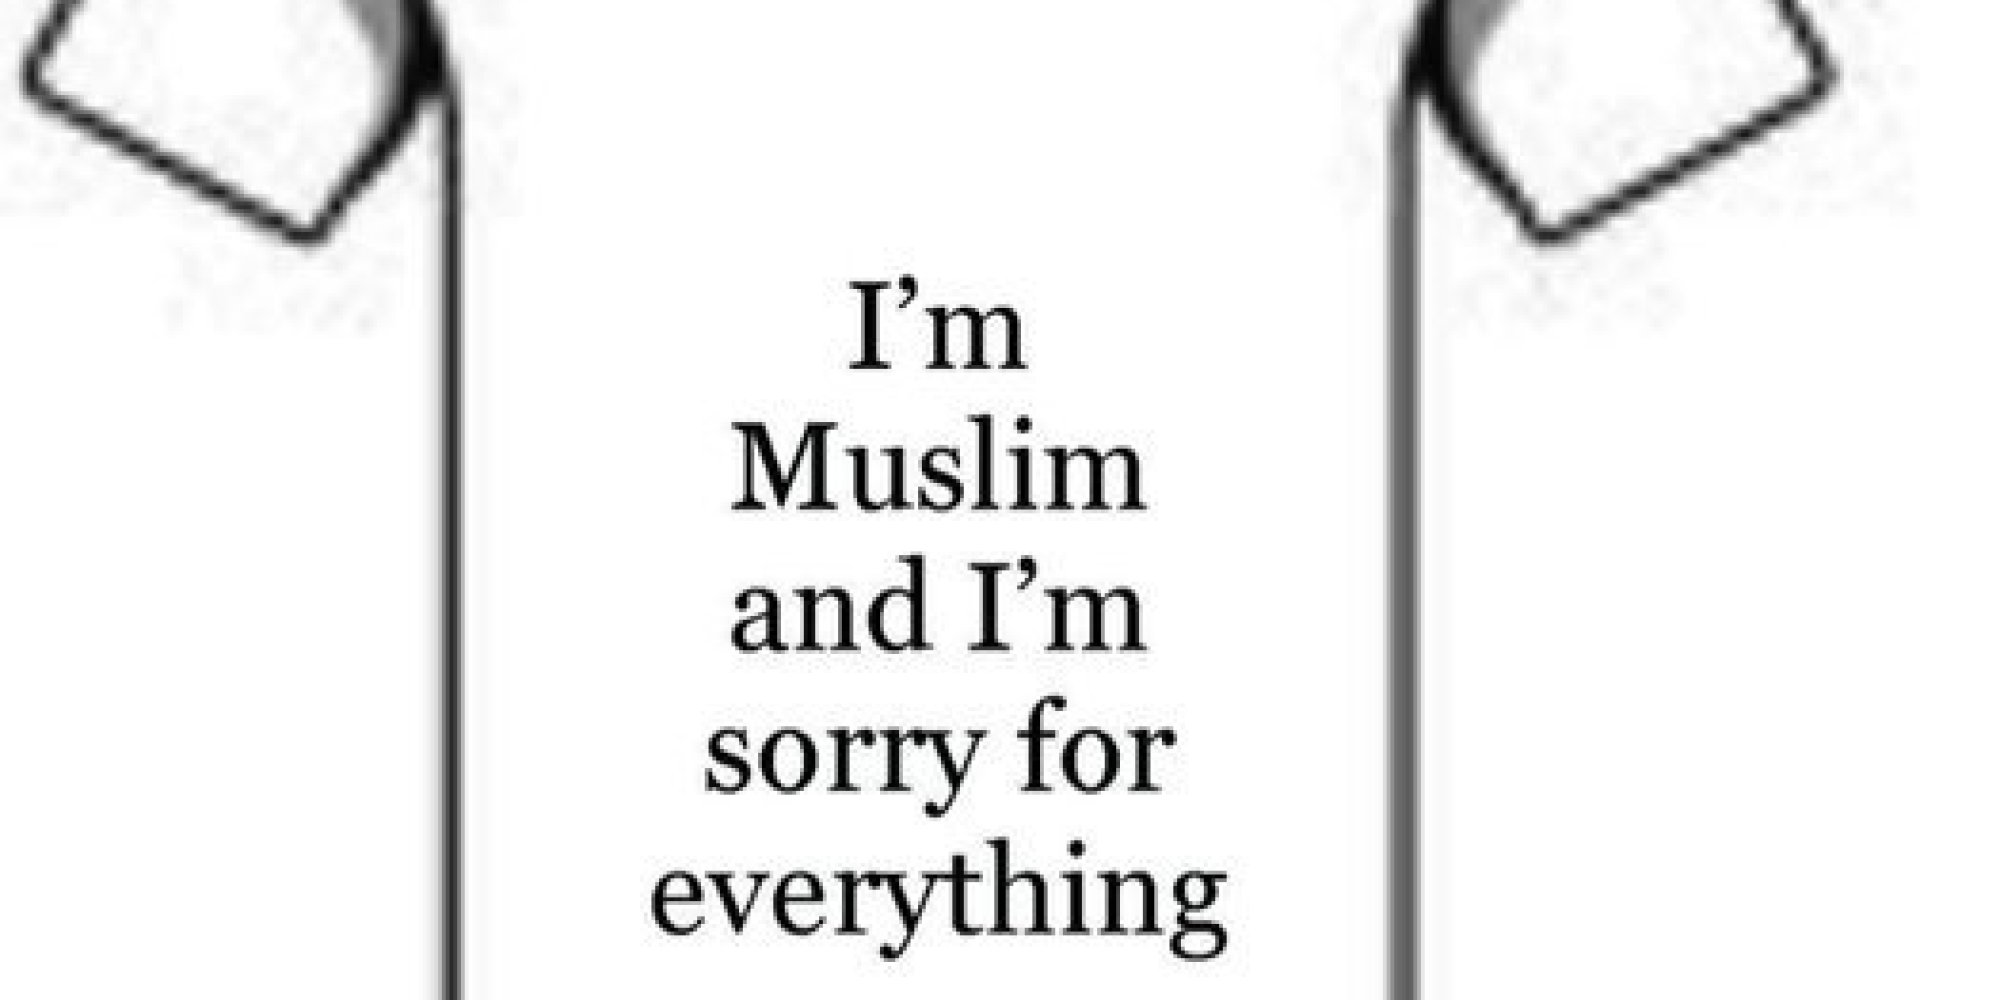 #muslimapologies Highlights The Absurdity Of Blaming An Entire Religion For  Actions Of Few  Huffpost